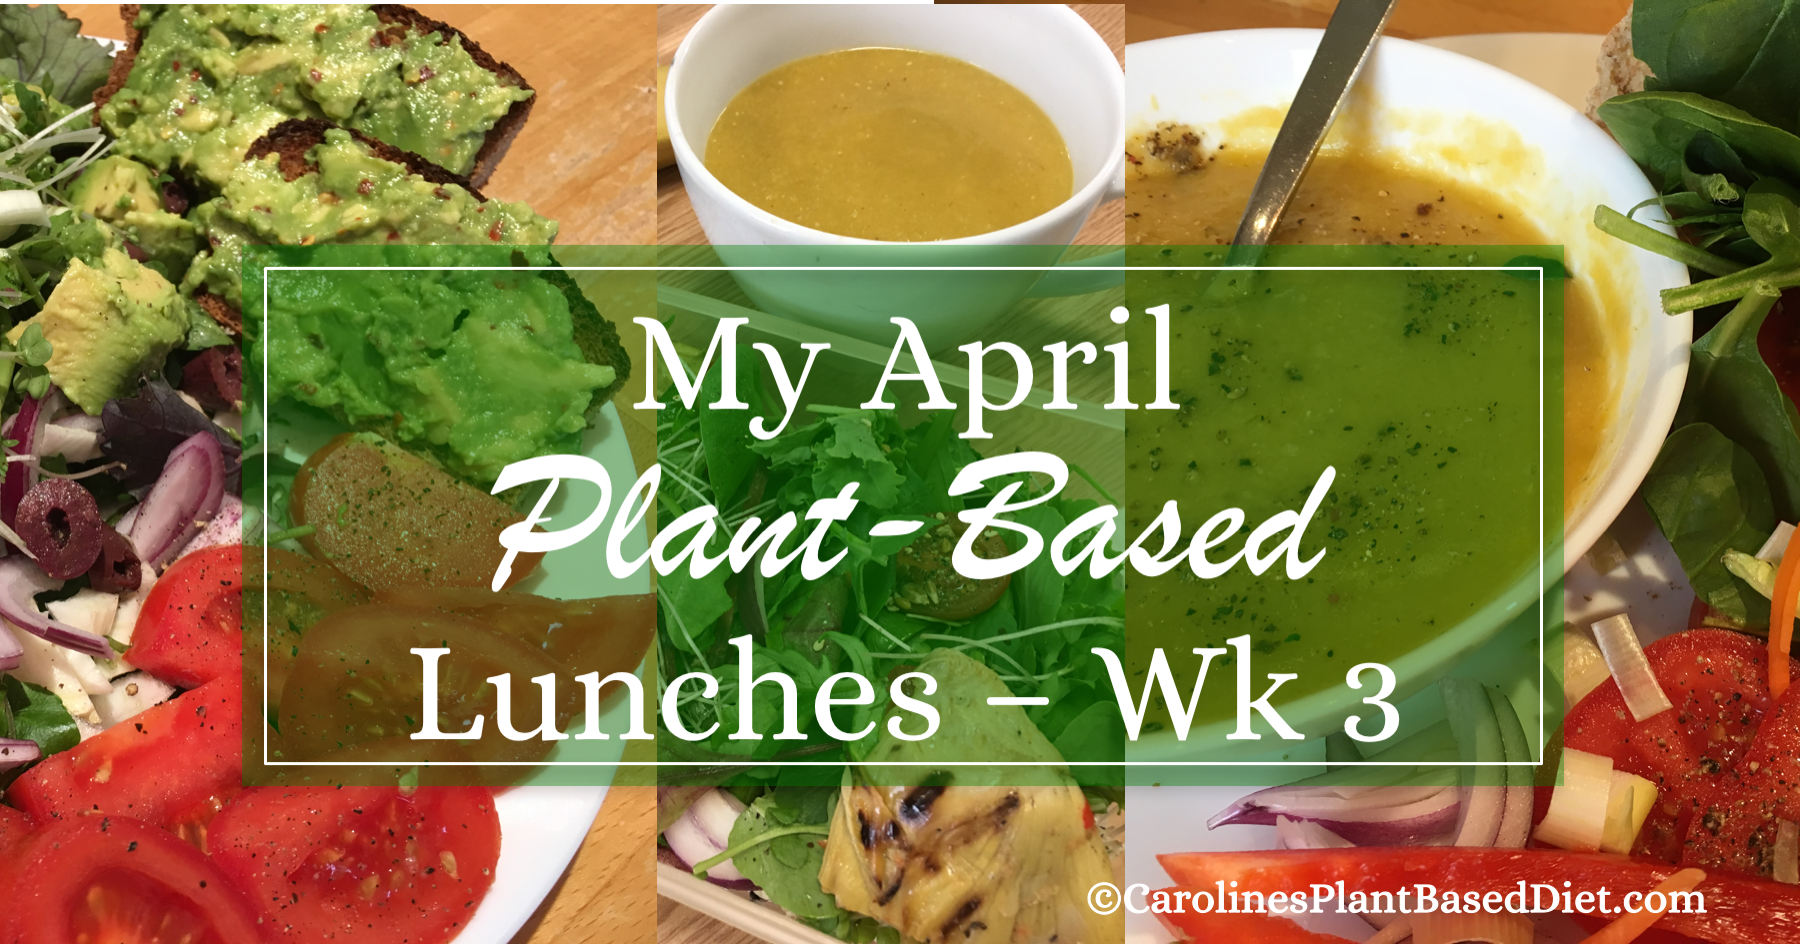 My April Plant-Based Lunches wk3